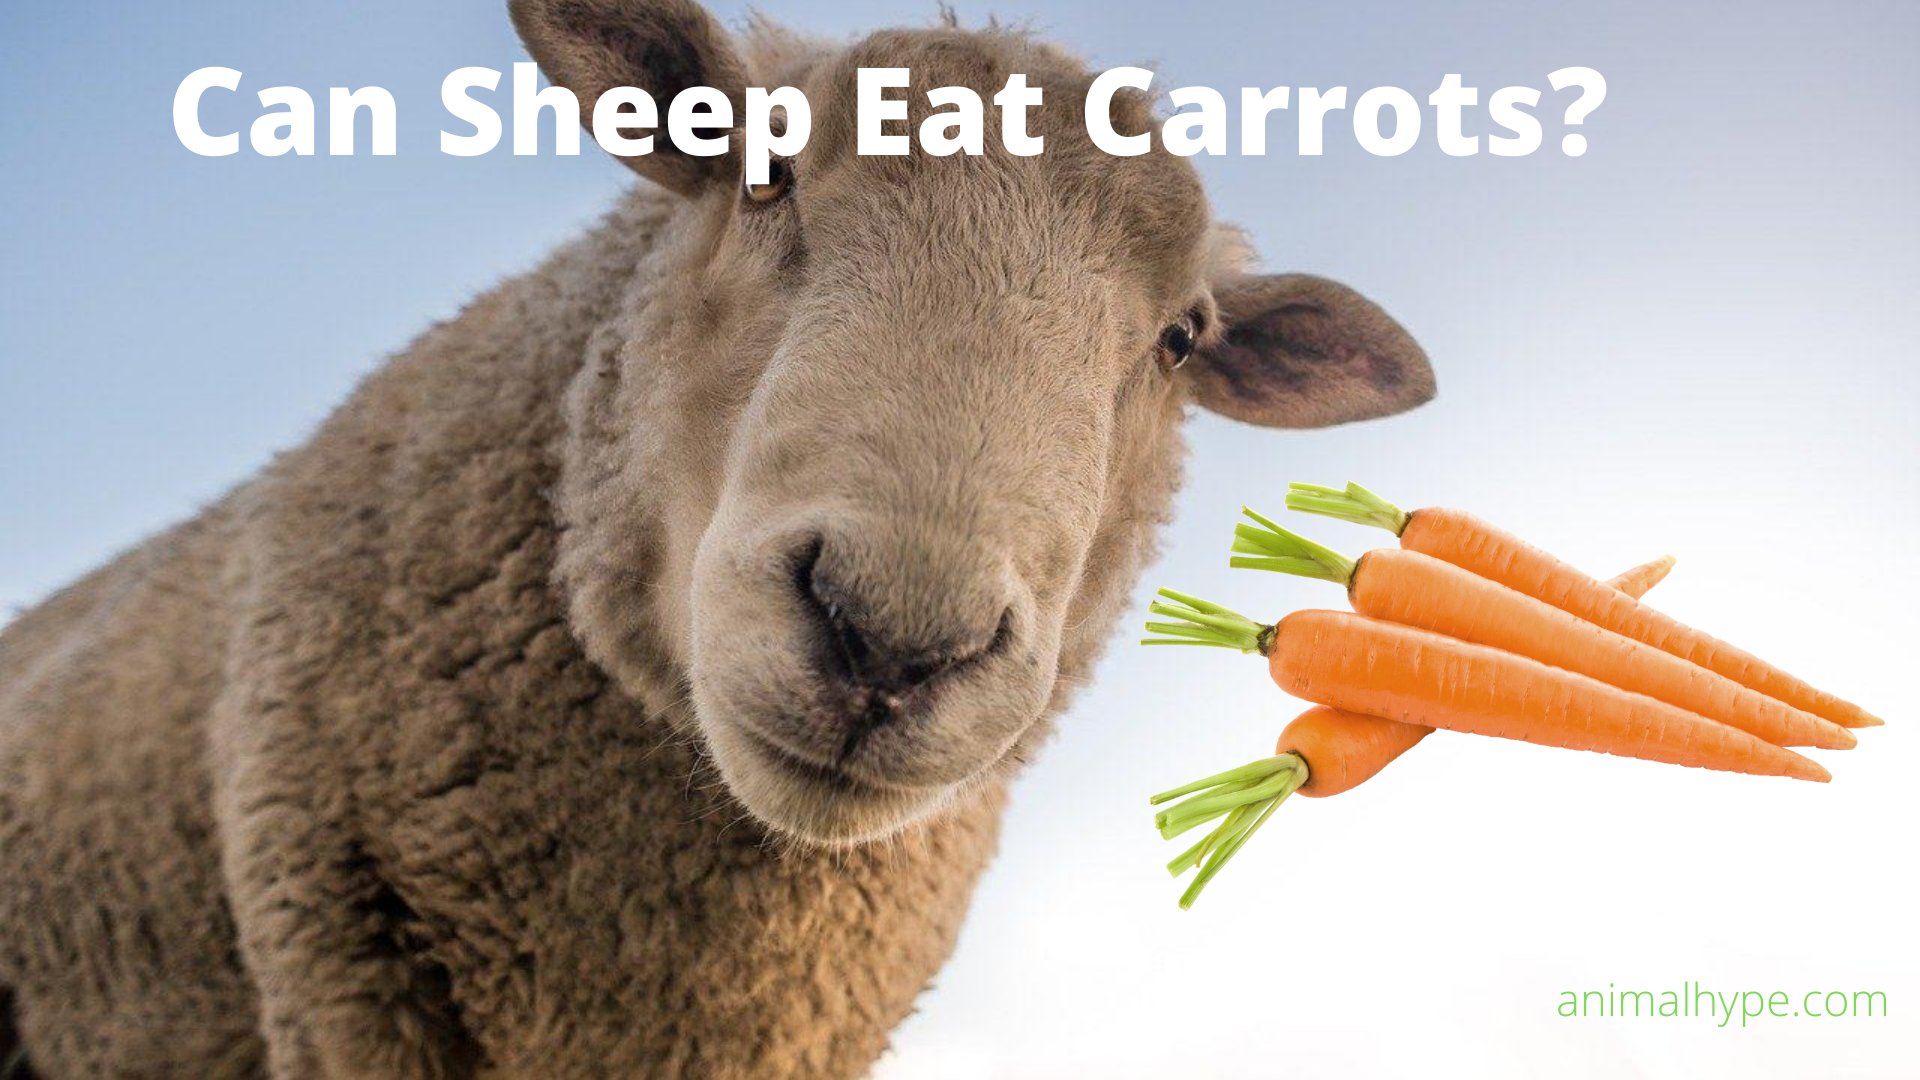 Can Sheep Eat Carrots